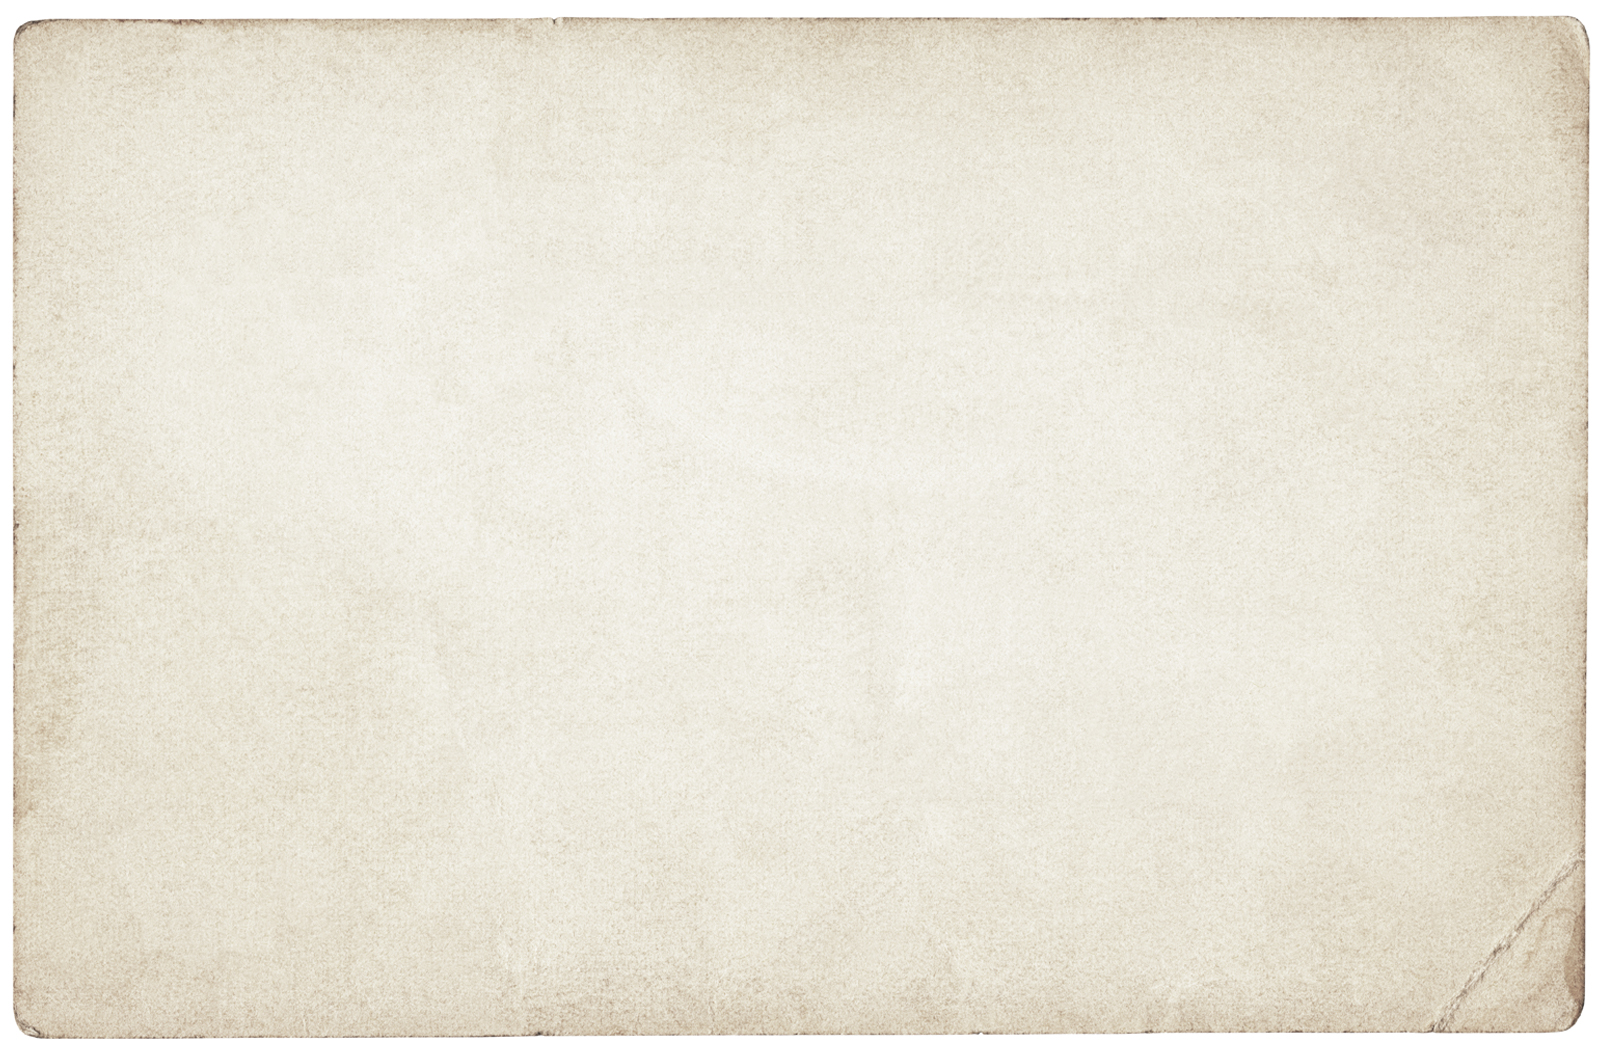 Background of old blank paper